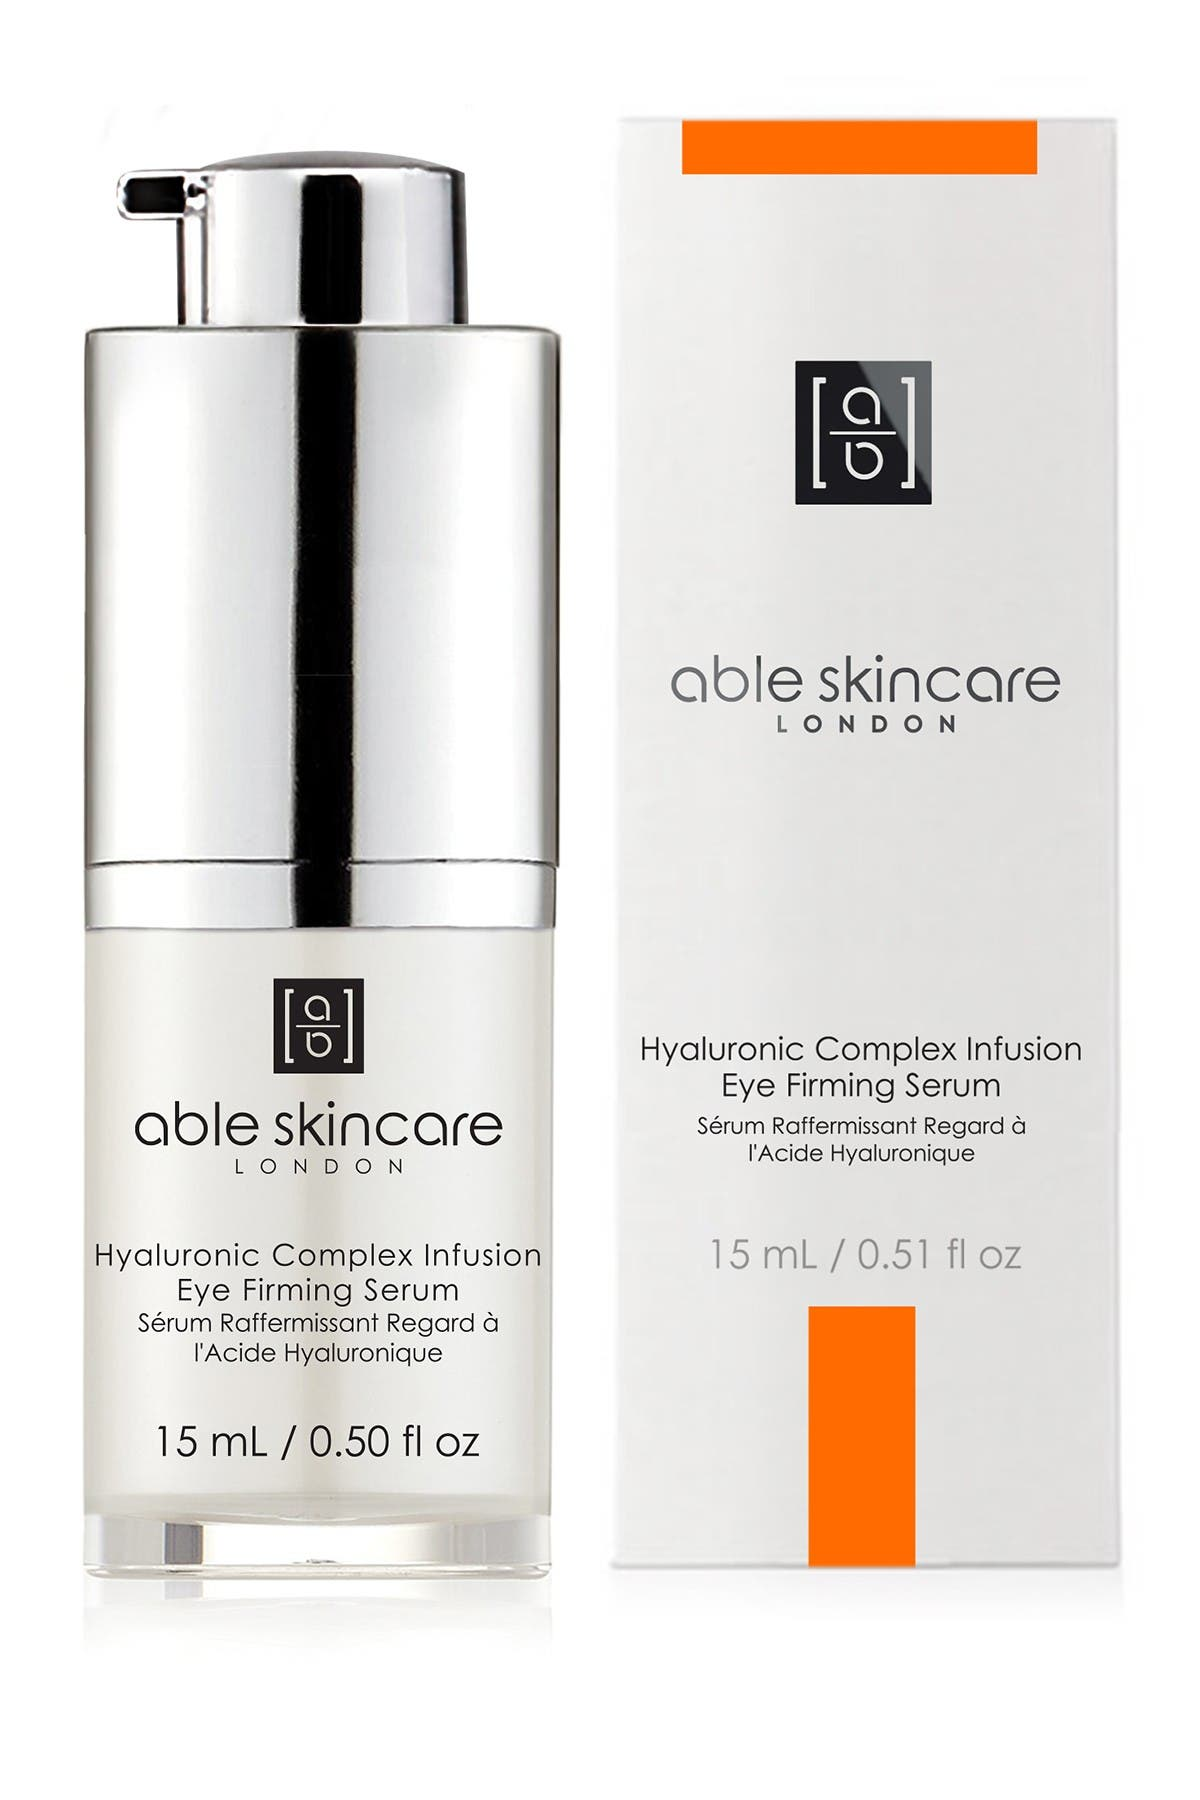 Image of Able Skincare Hyaluronic Complex Infusion Eye Firming Serum